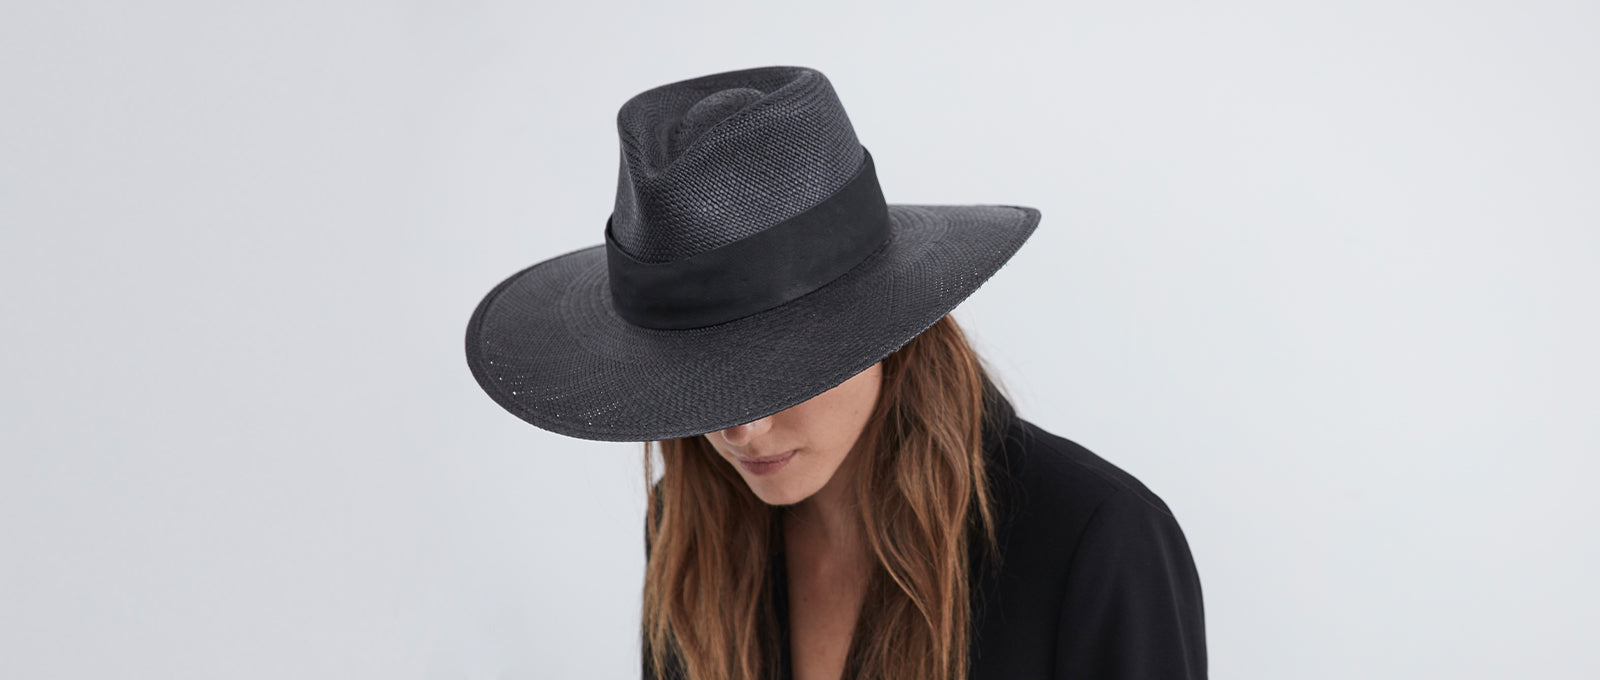 janessa leone fedora all black straw with thick black leather band made from panama straw. UPF rating 45+ for sun protection womens sun hats modern